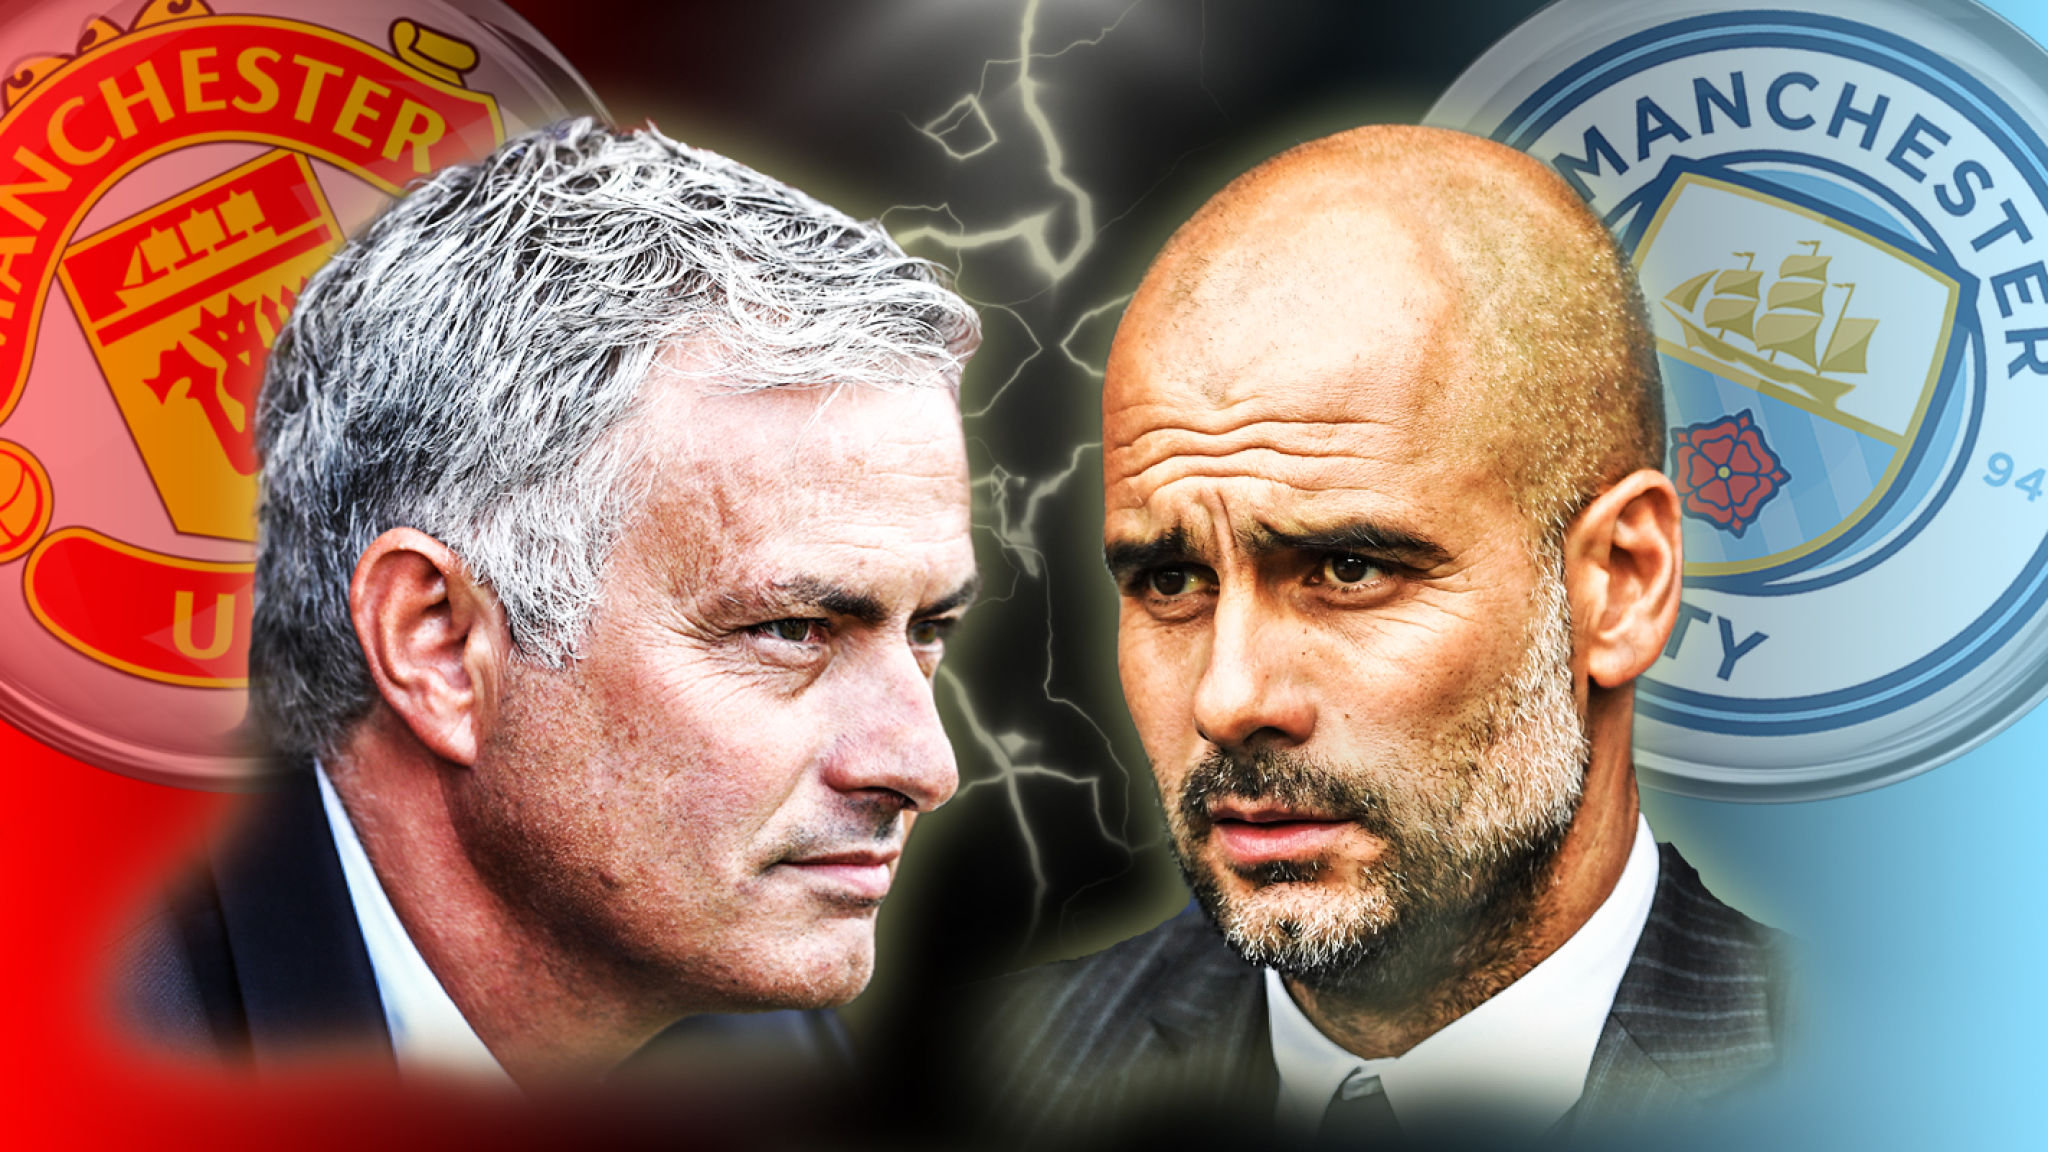 No love lost - Mourinho and Guardiola have a deep rooted dislike for each other.